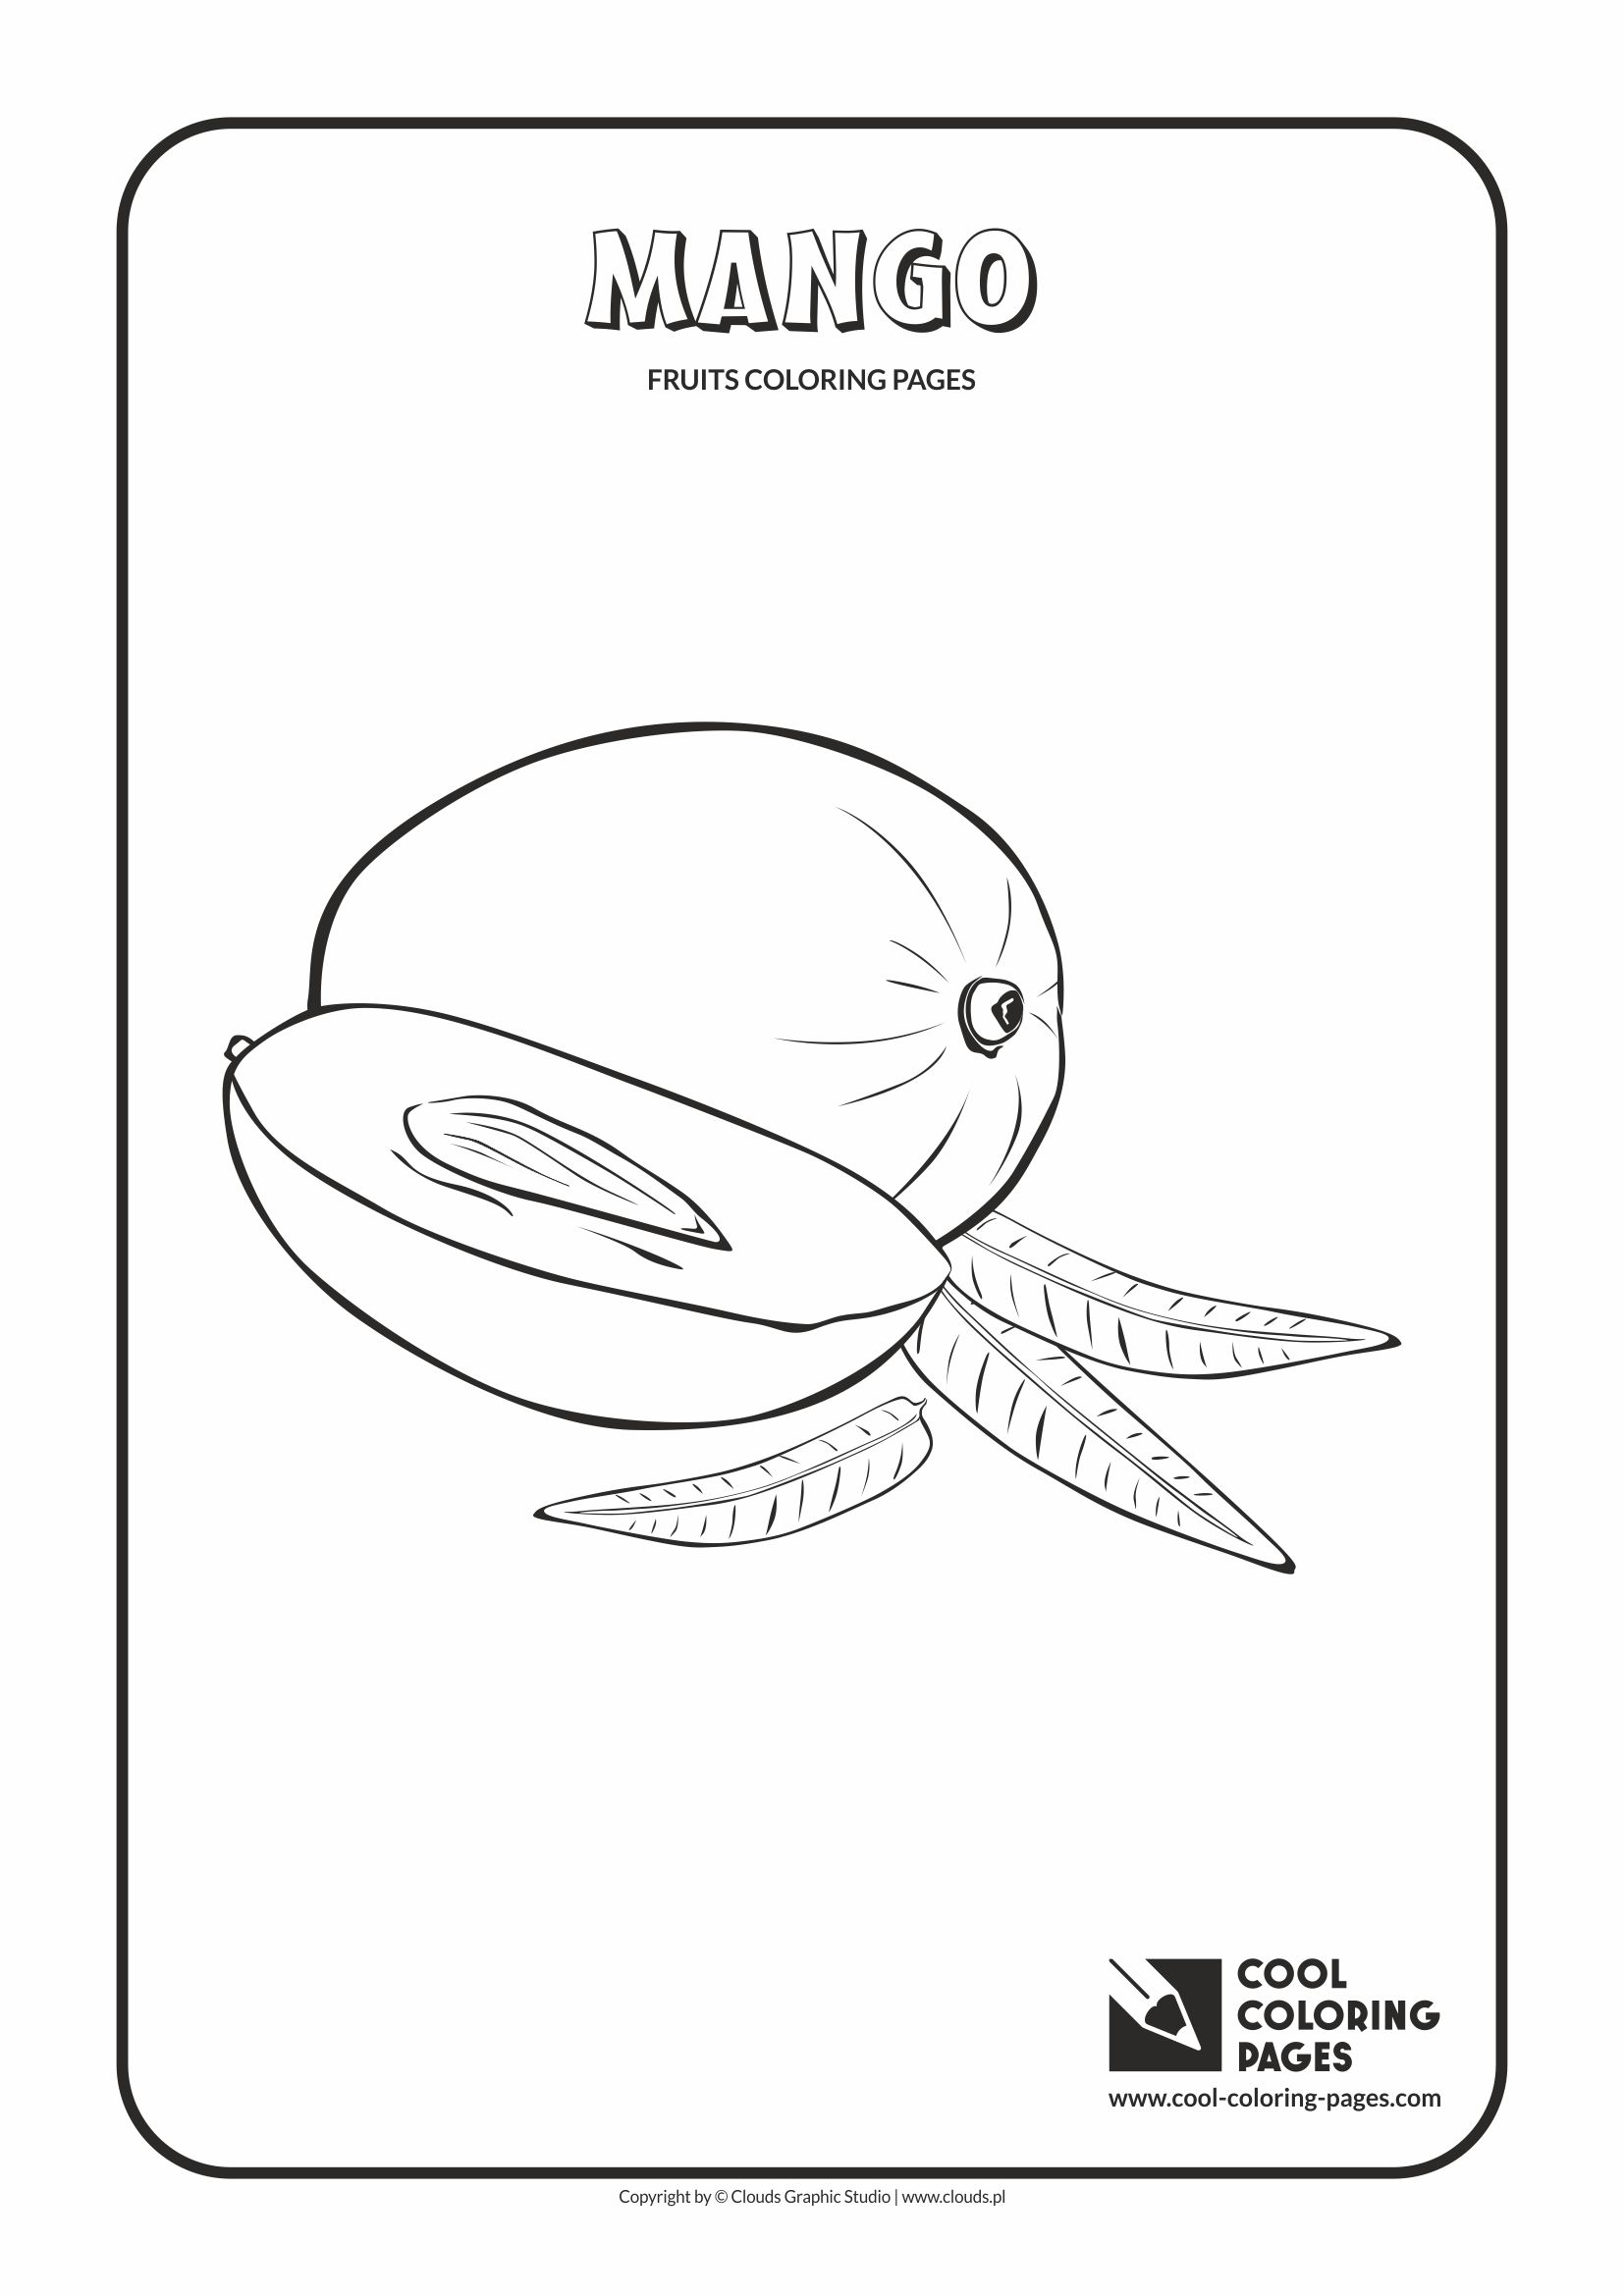 Cool Coloring Pages - Plants / Mango / Coloring page with mango